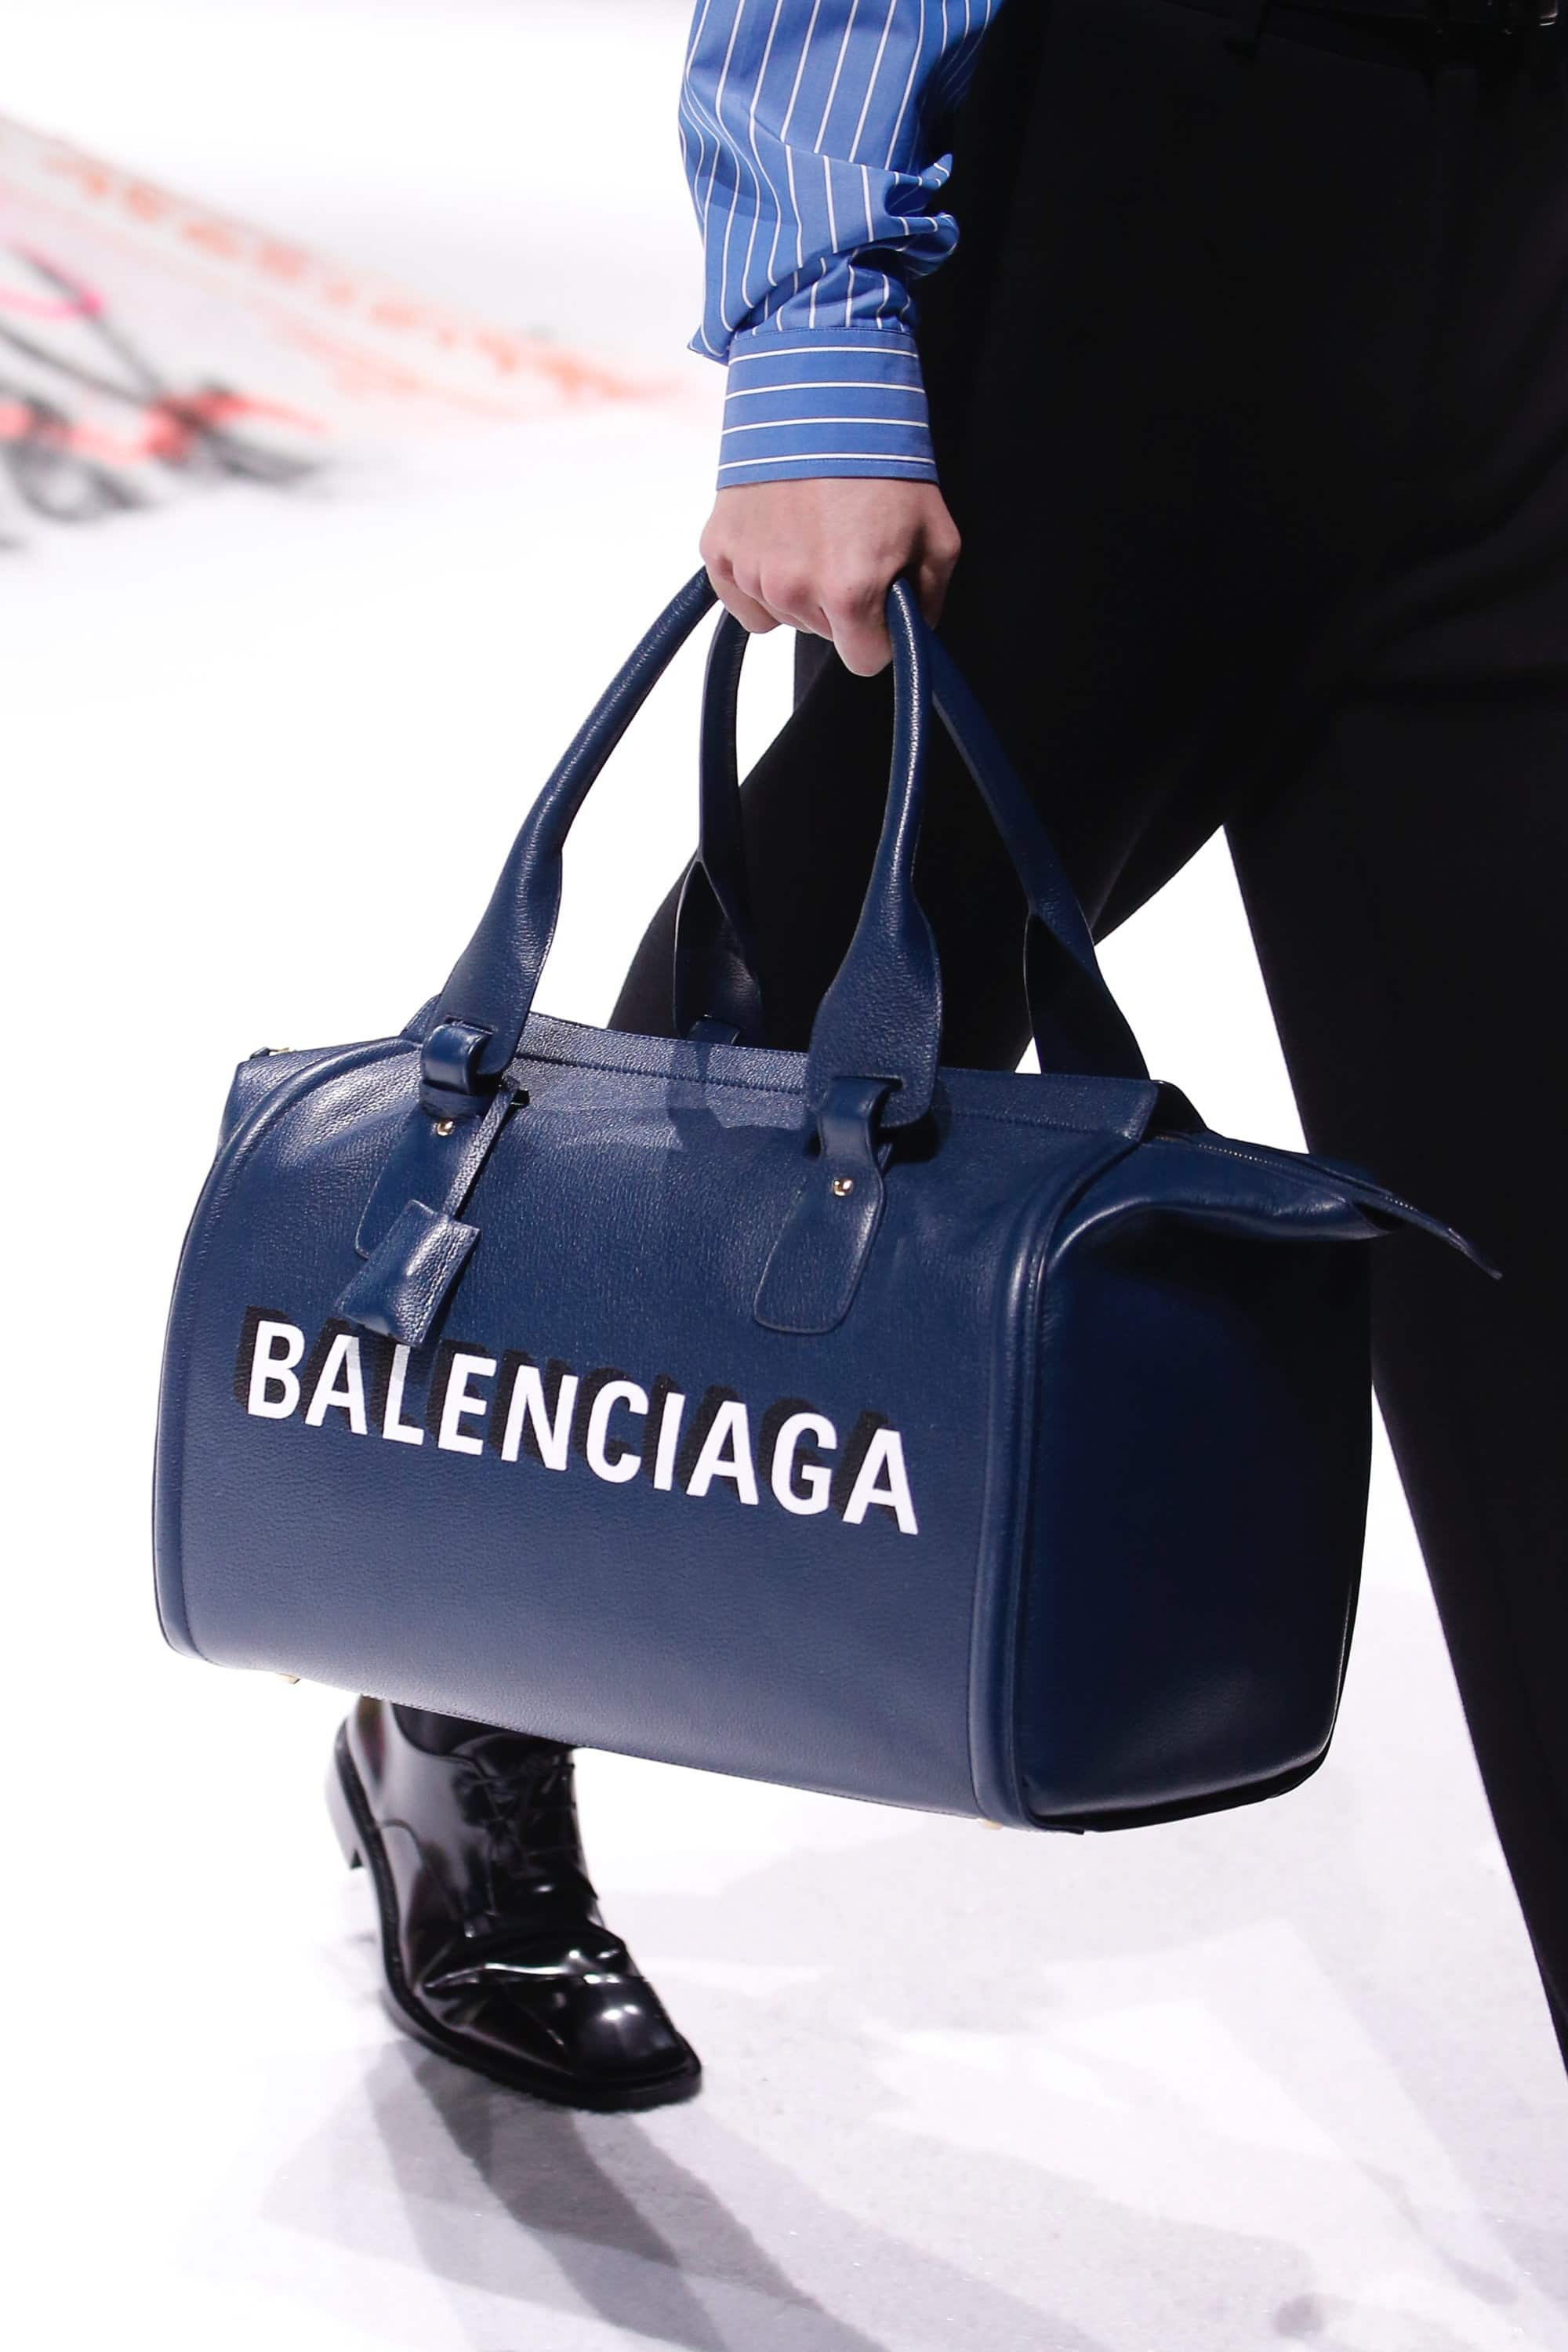 651f4a74086 Balenciaga Fall/Winter 2018 Runway Bag Collection | Spotted Fashion